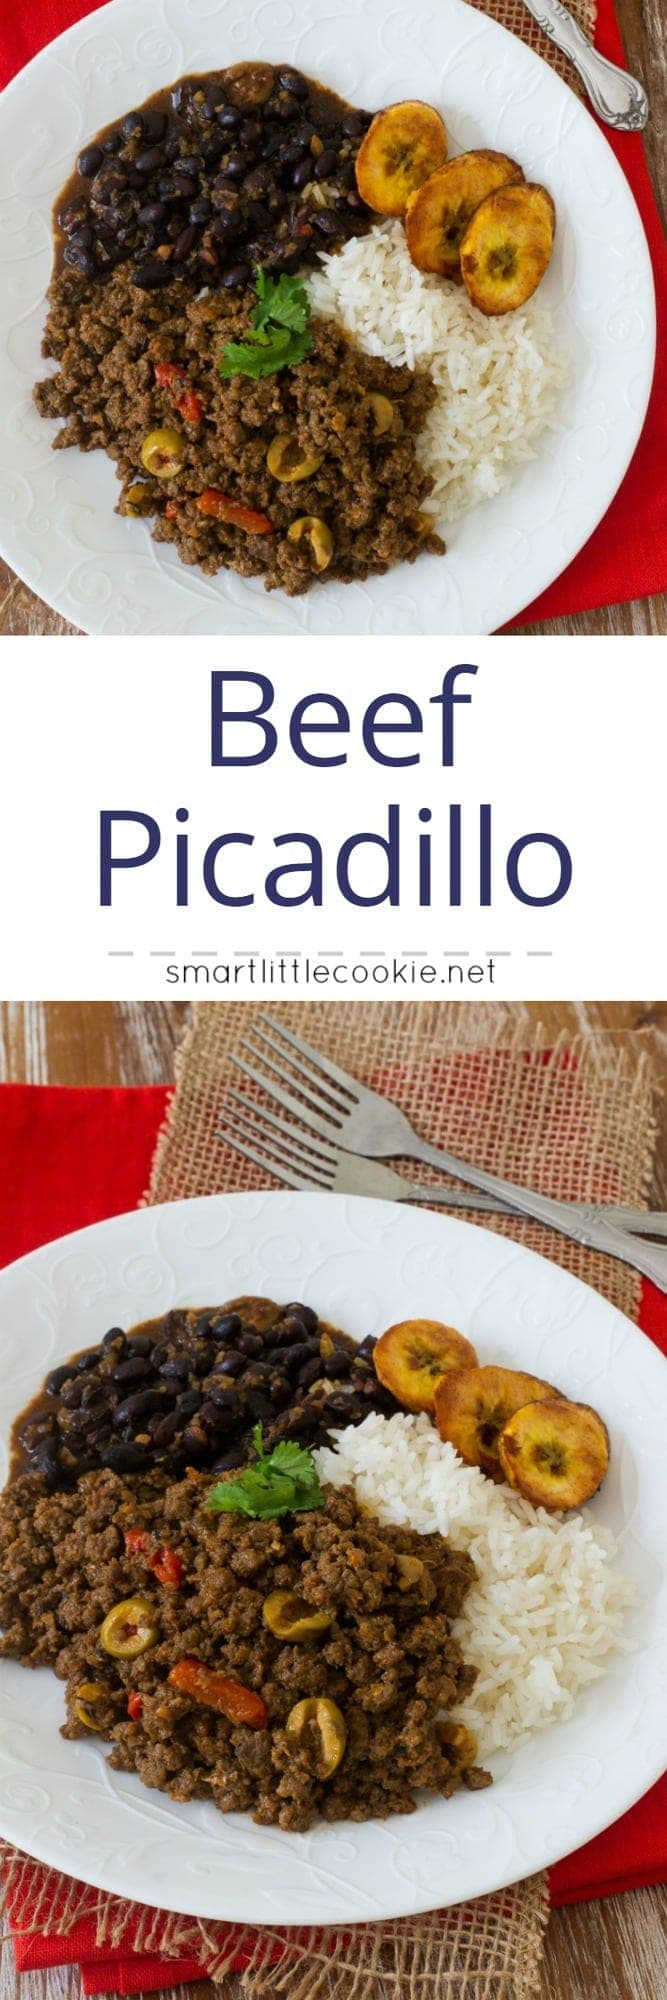 Beef Picadillo is a delicious, quick fix, easy dish filled with flavor. It is perfect for weeknight dinners, layered in casseroles and even as a filling for your homemade savory pastries. #easyrecipe #weeknightmeal mydominicankitchen.com